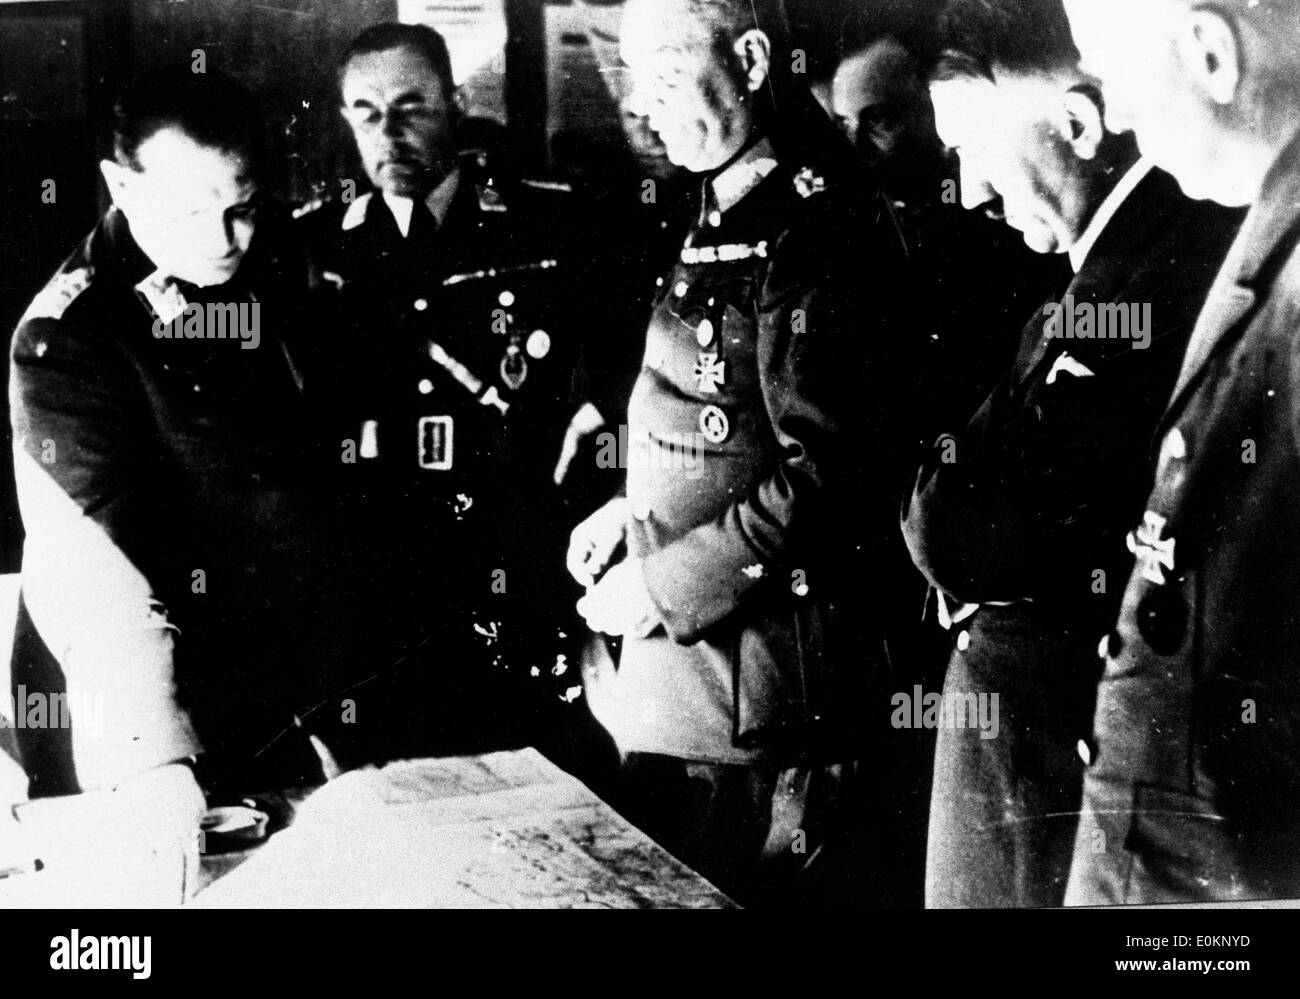 Adolf Hitler reviewing maps - Stock Image